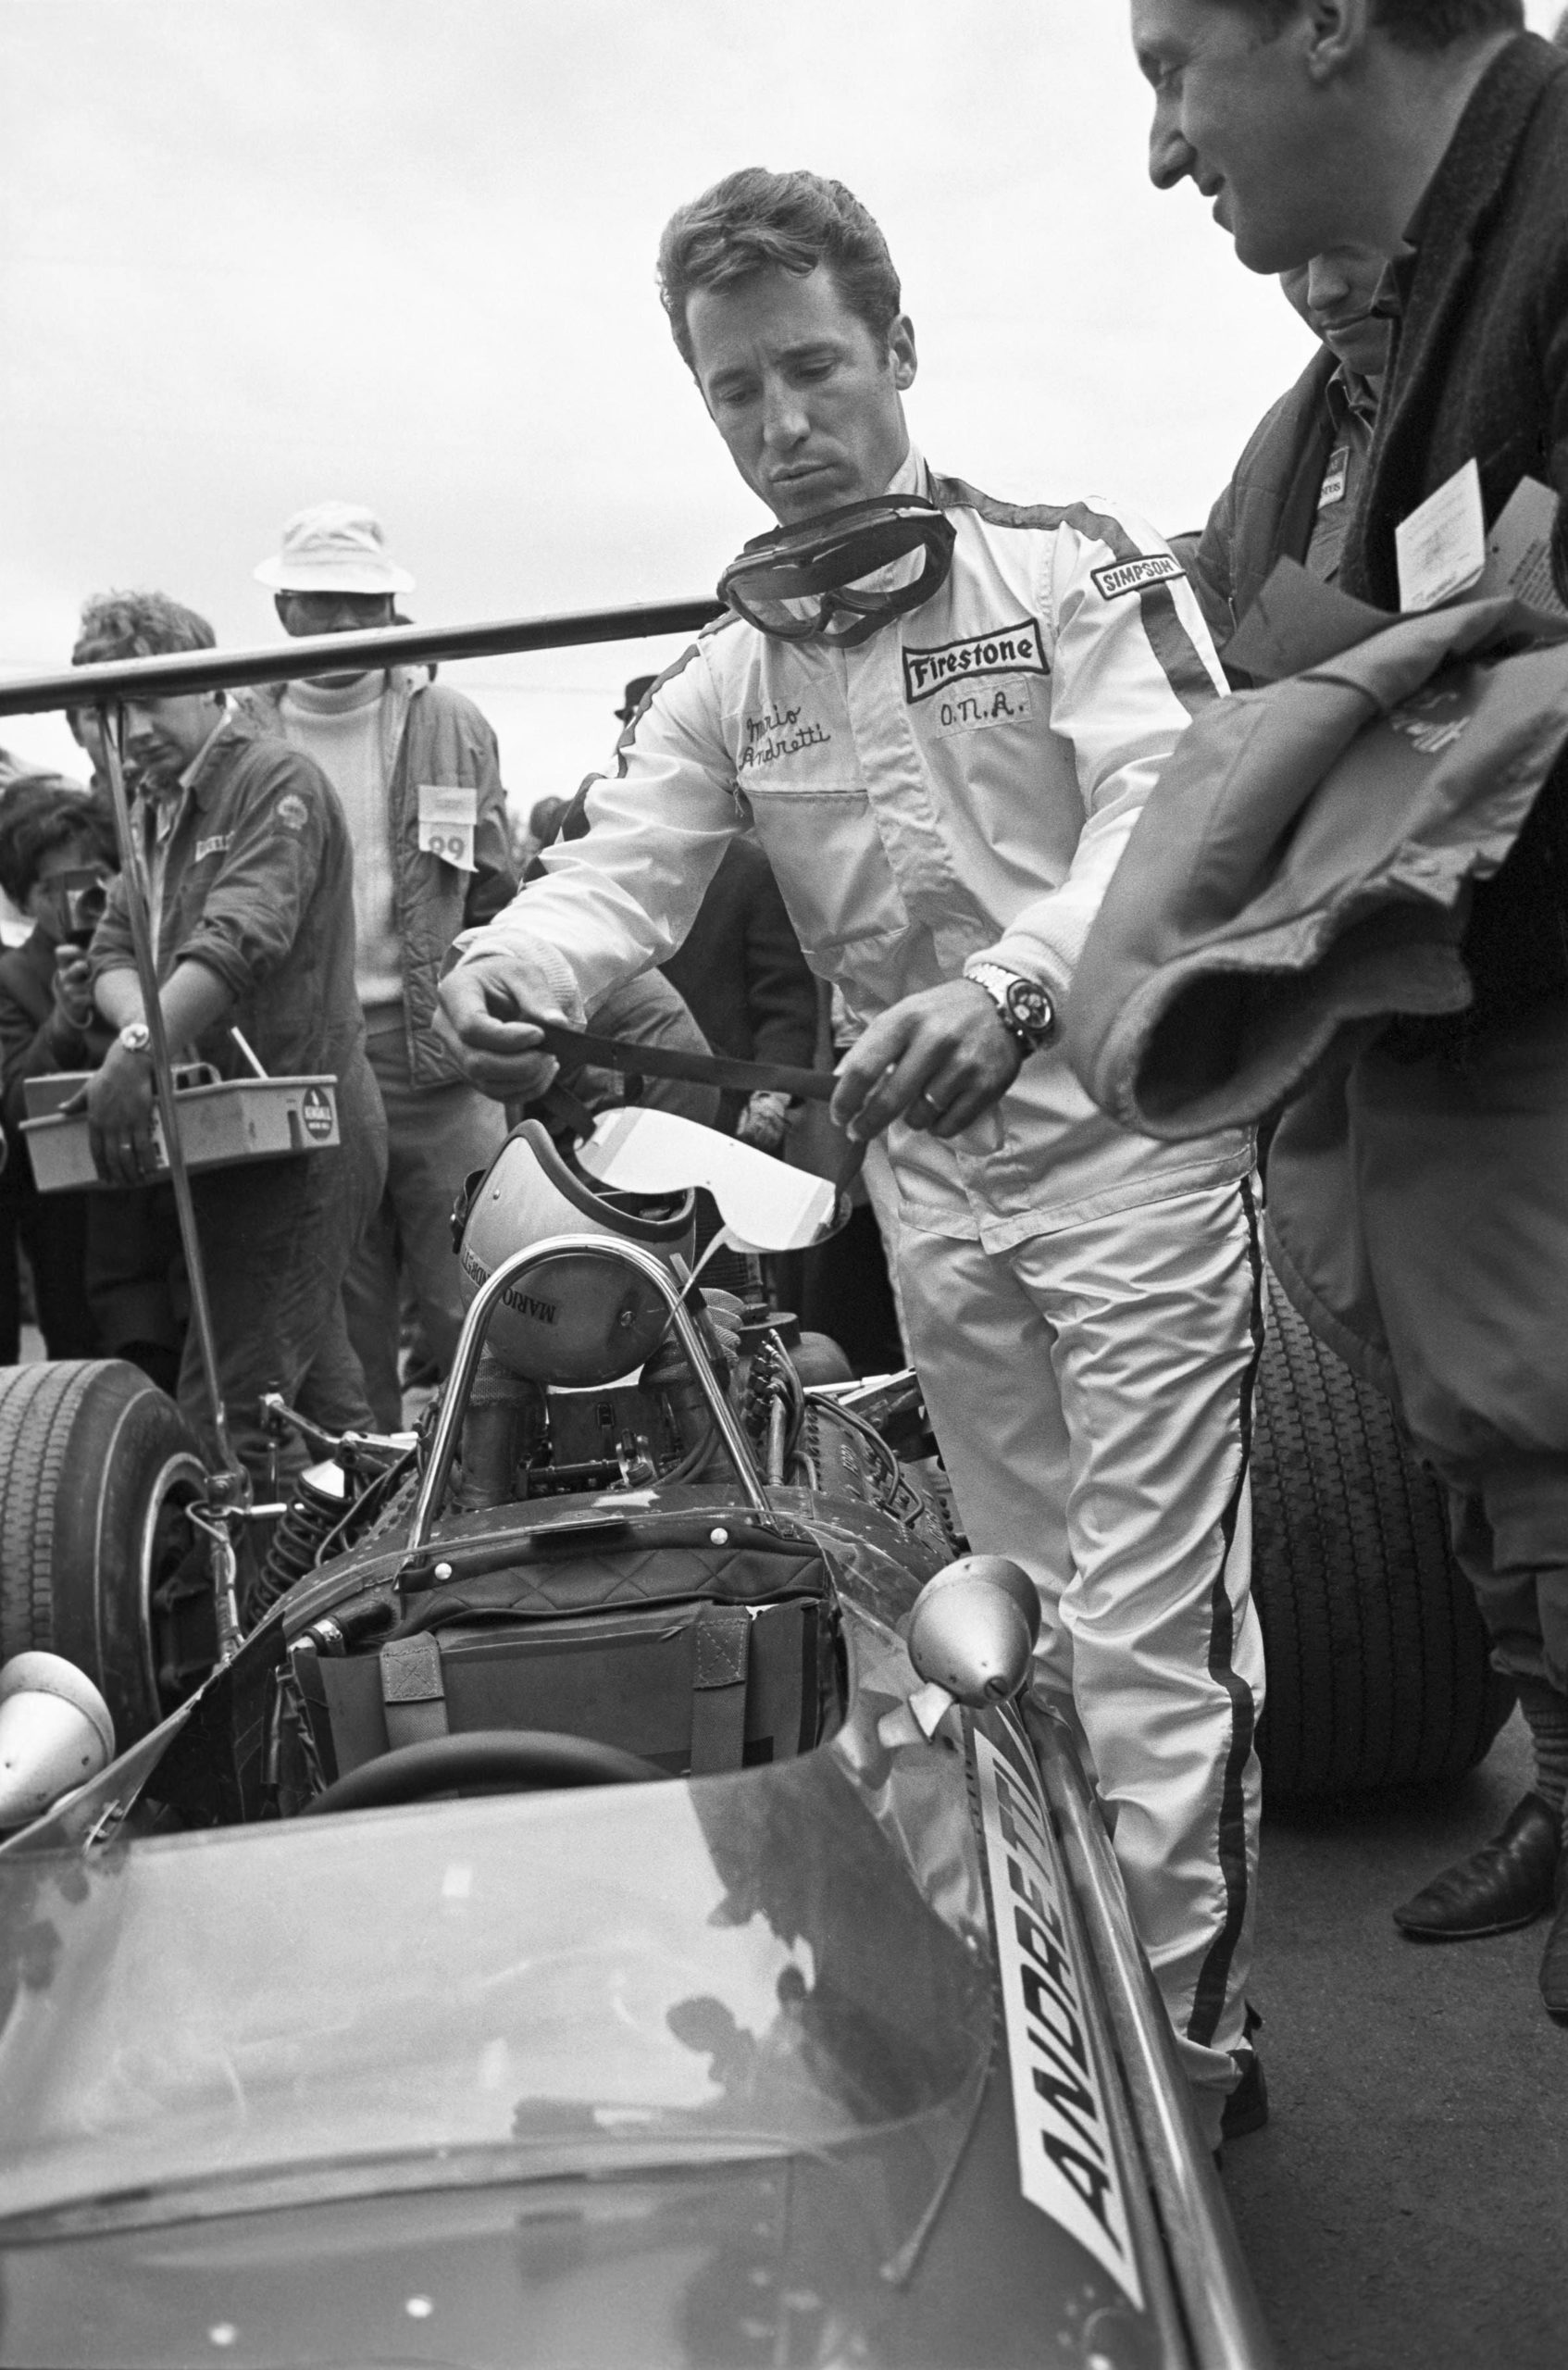 Mario-Andretti-on-the-grid-at-Watkins-Glen-for-the-Us-Grand-Prix-in-1968